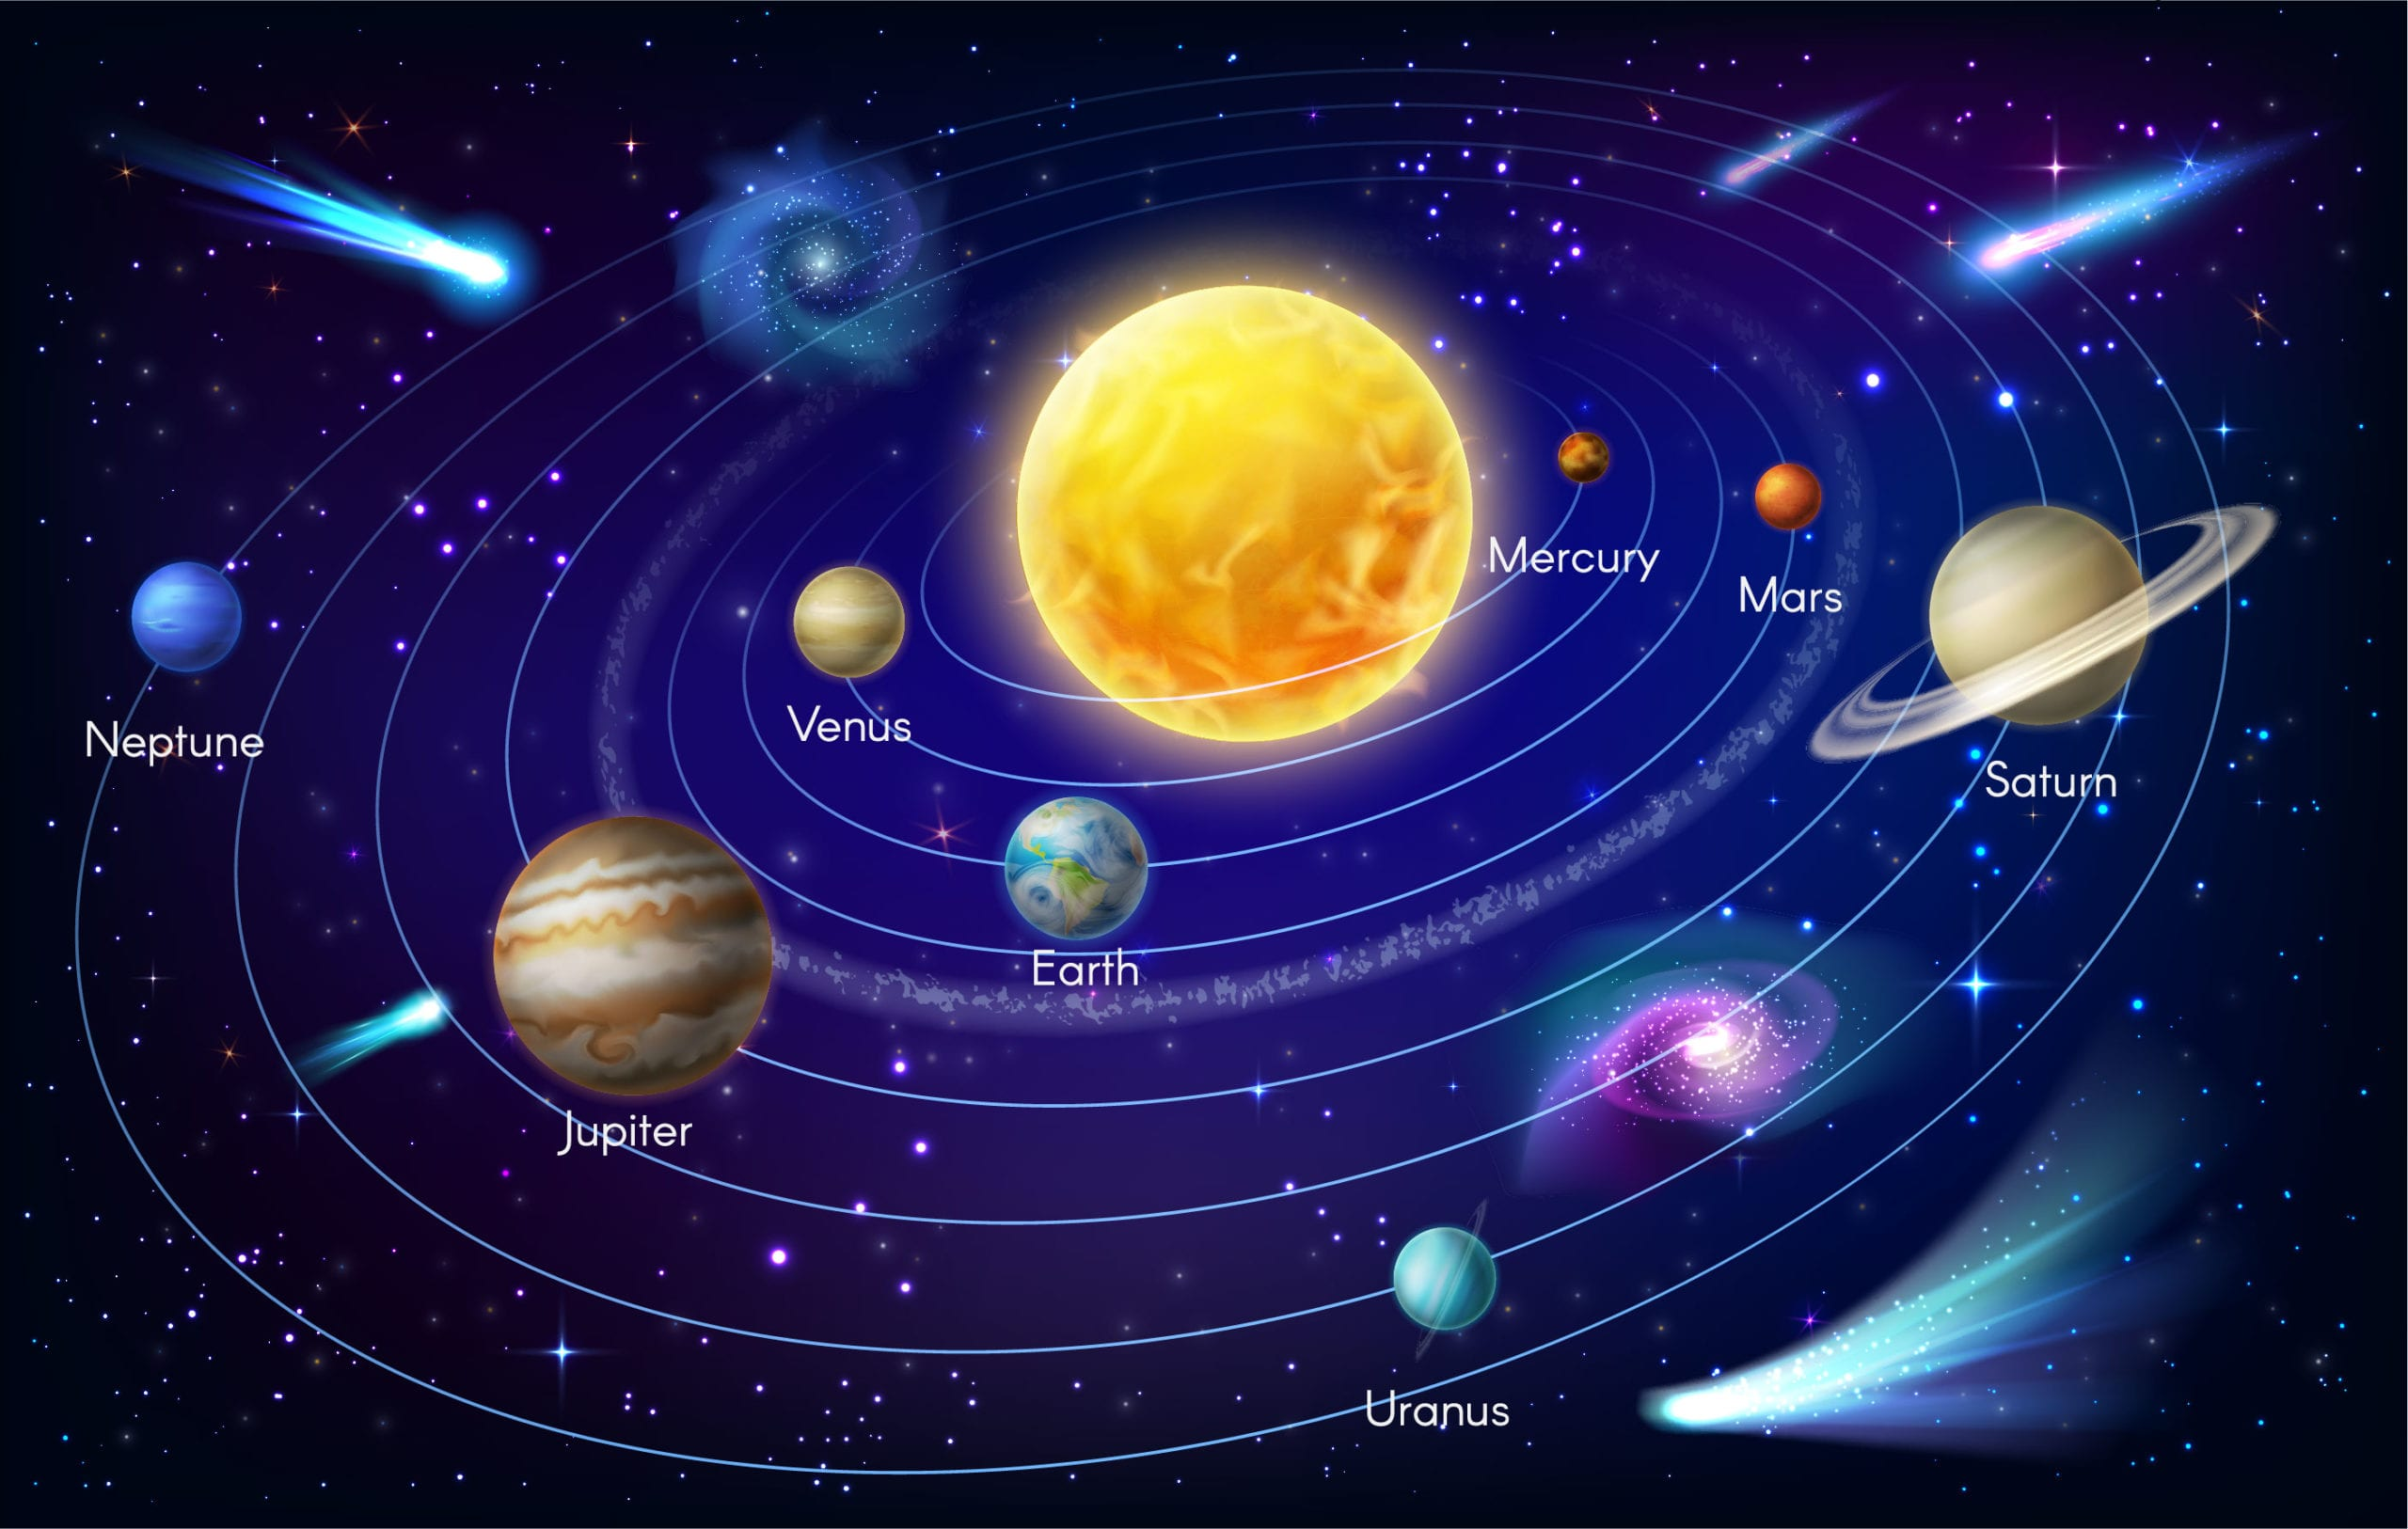 The solar systems most distant planet is Neptune